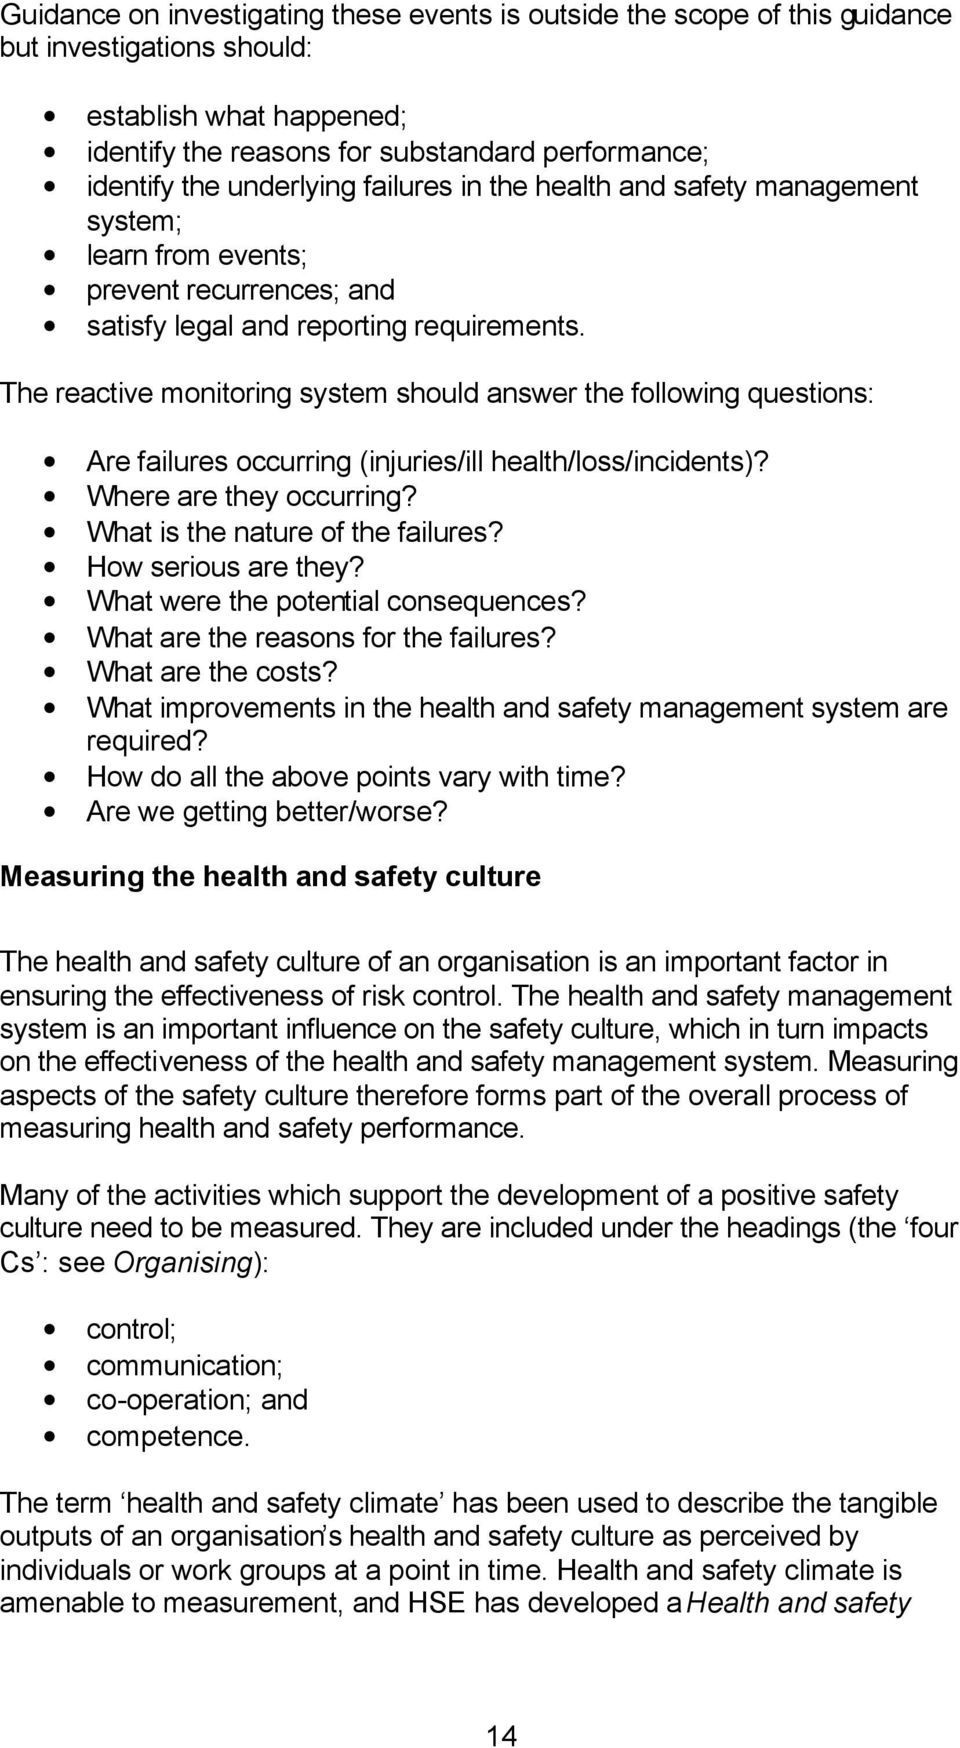 The reactive monitoring system should answer the following questions: Are failures occurring (injuries/ill health/loss/incidents)? Where are they occurring? What is the nature of the failures?